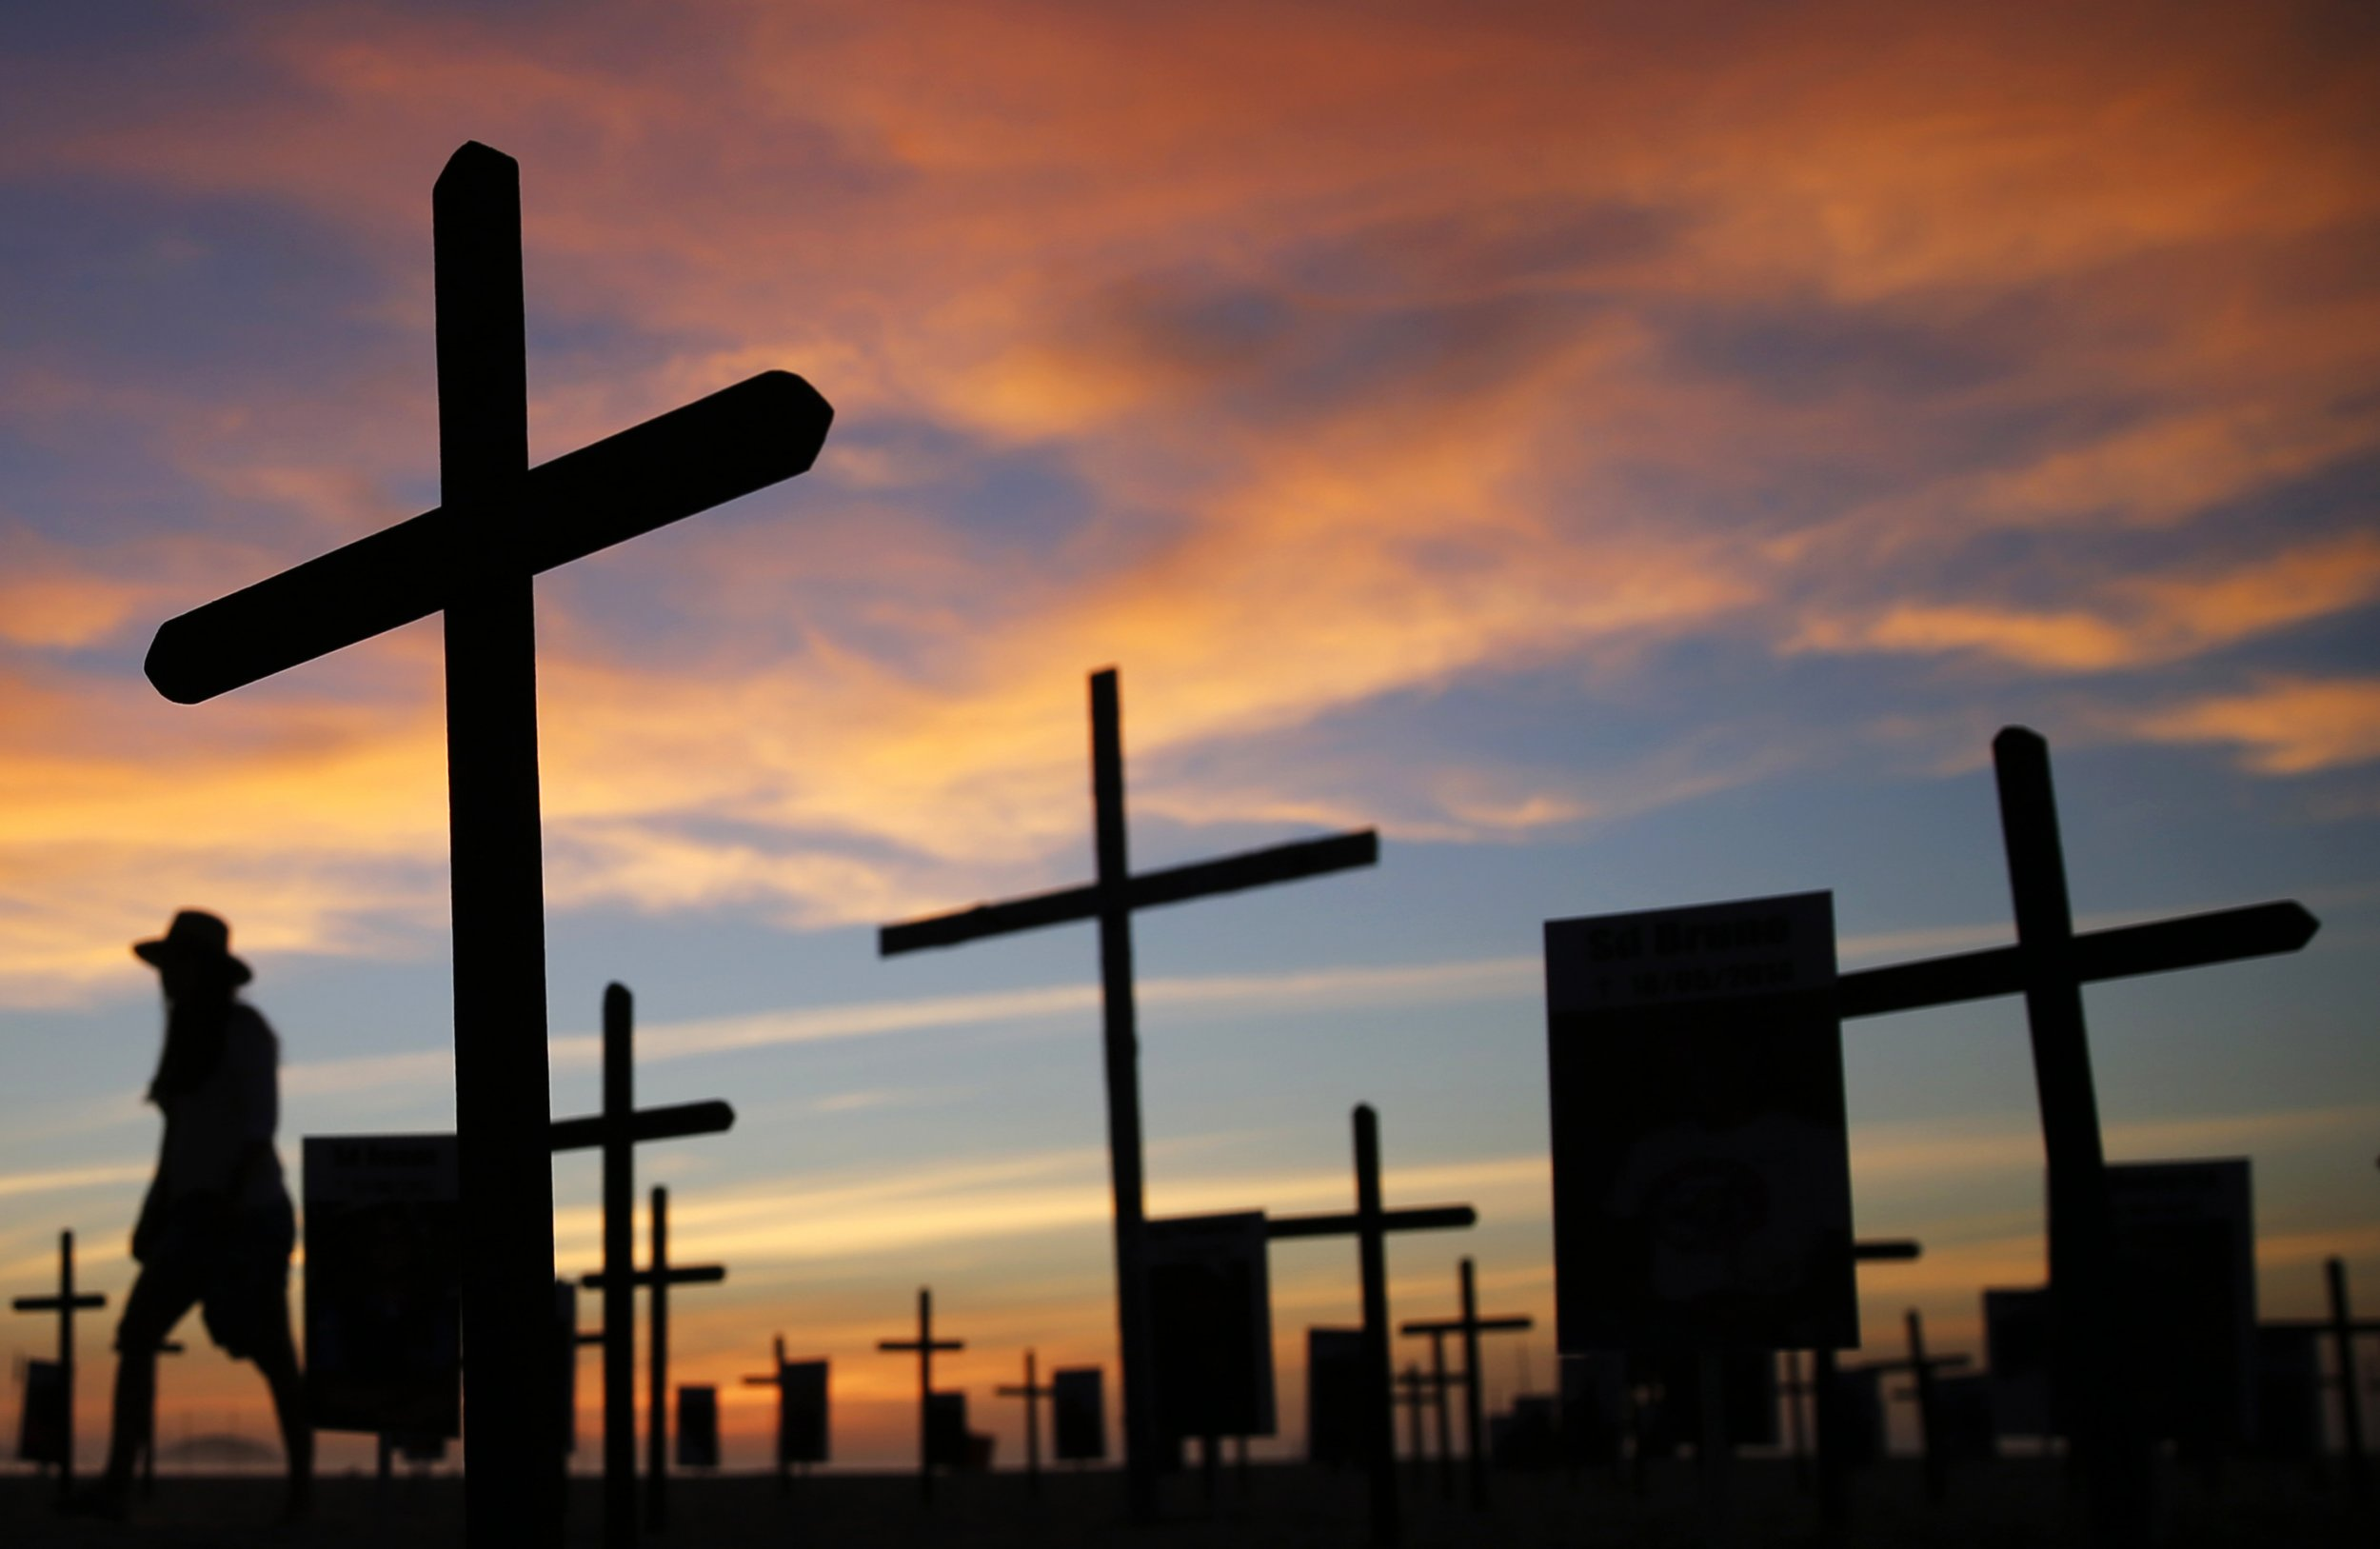 Study America Becoming Less Christian More Secular - Christian religion